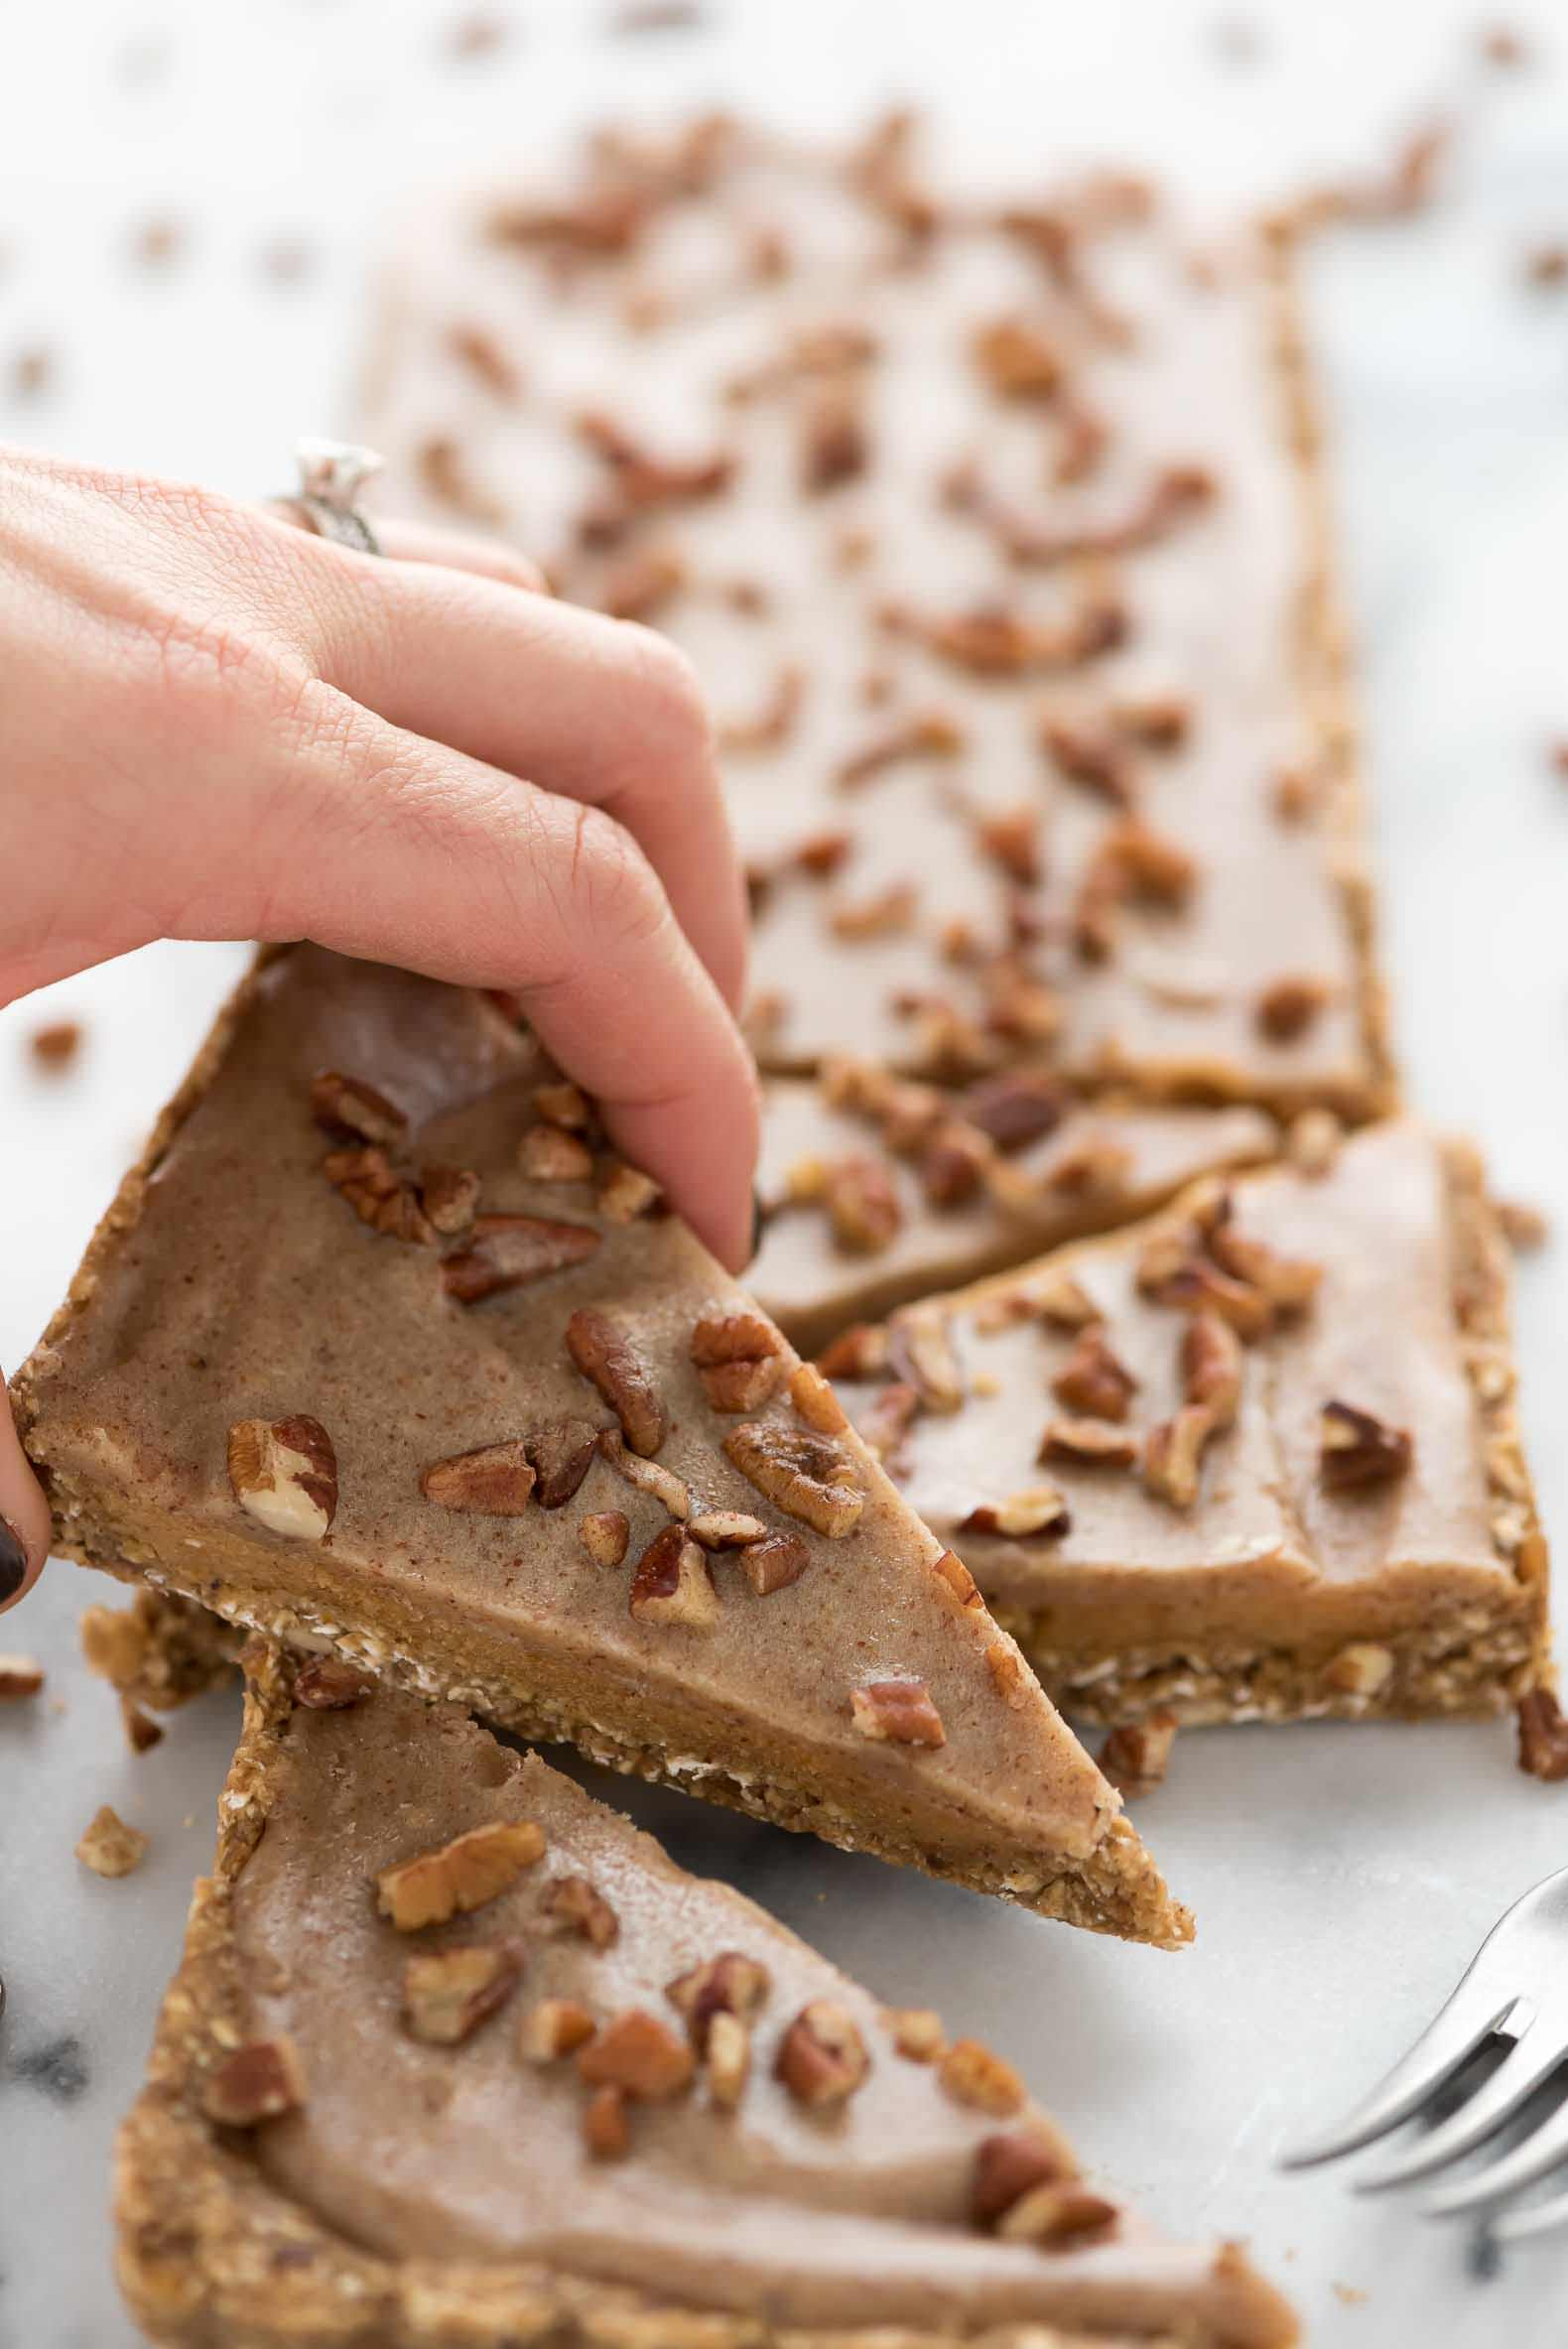 No Bake Pumpkin Bars, Healthy Snack, Diary Free, Almond Butter, Honey, Fall Dessert, Thanksgiving, Caramel, Gluten Free